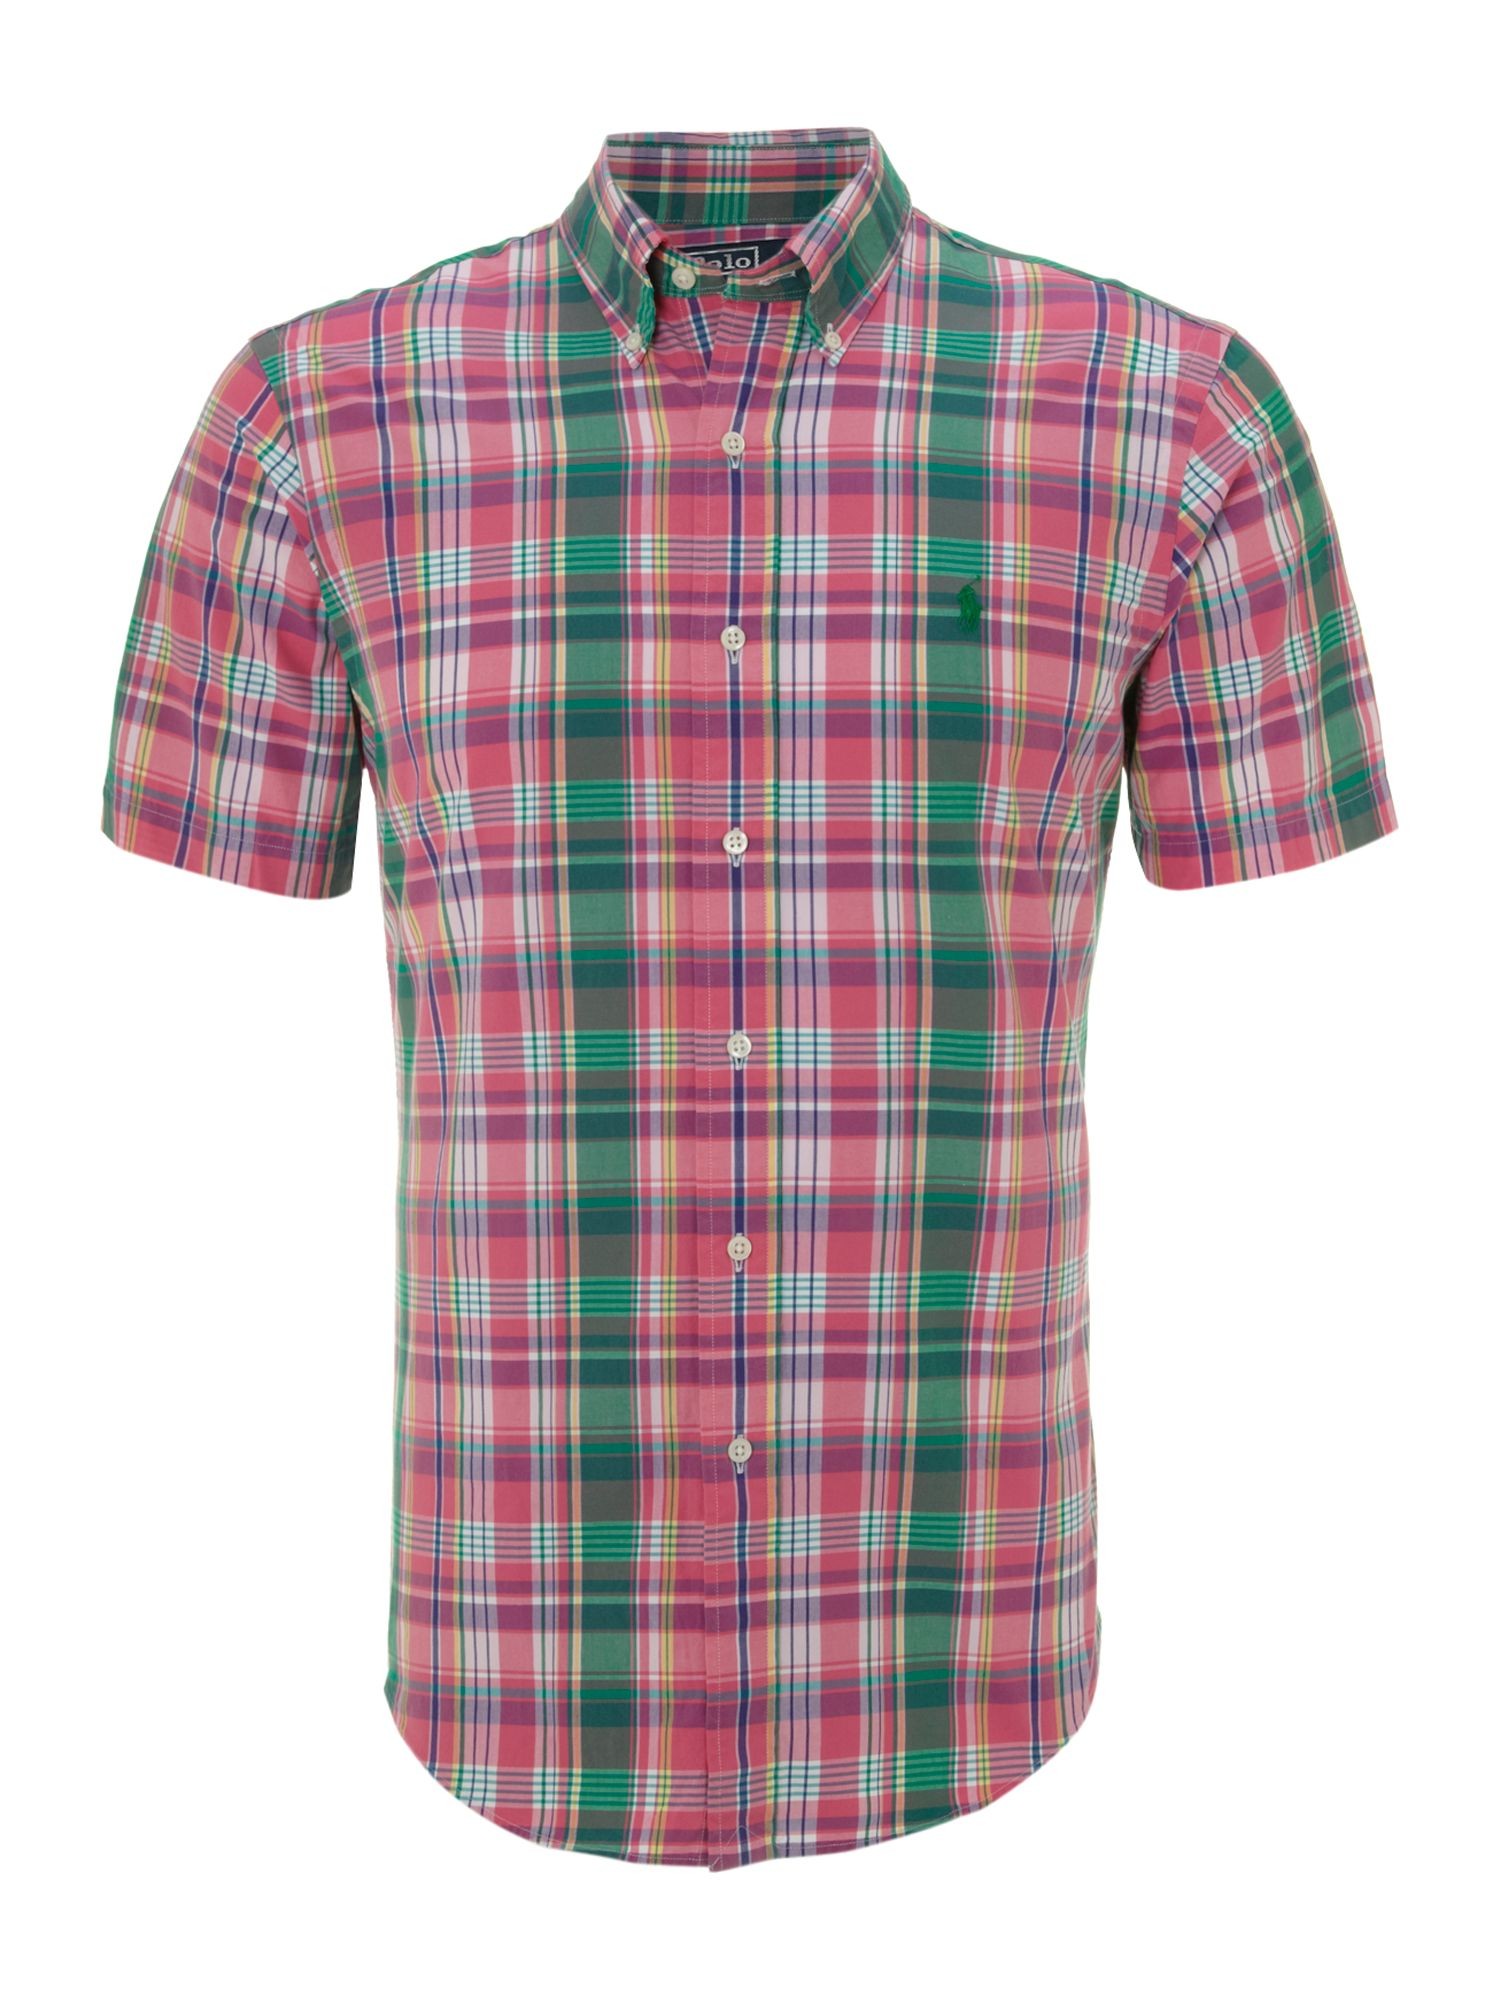 Polo ralph lauren short sleeved checked shirt in pink for for Polo shirts without buttons